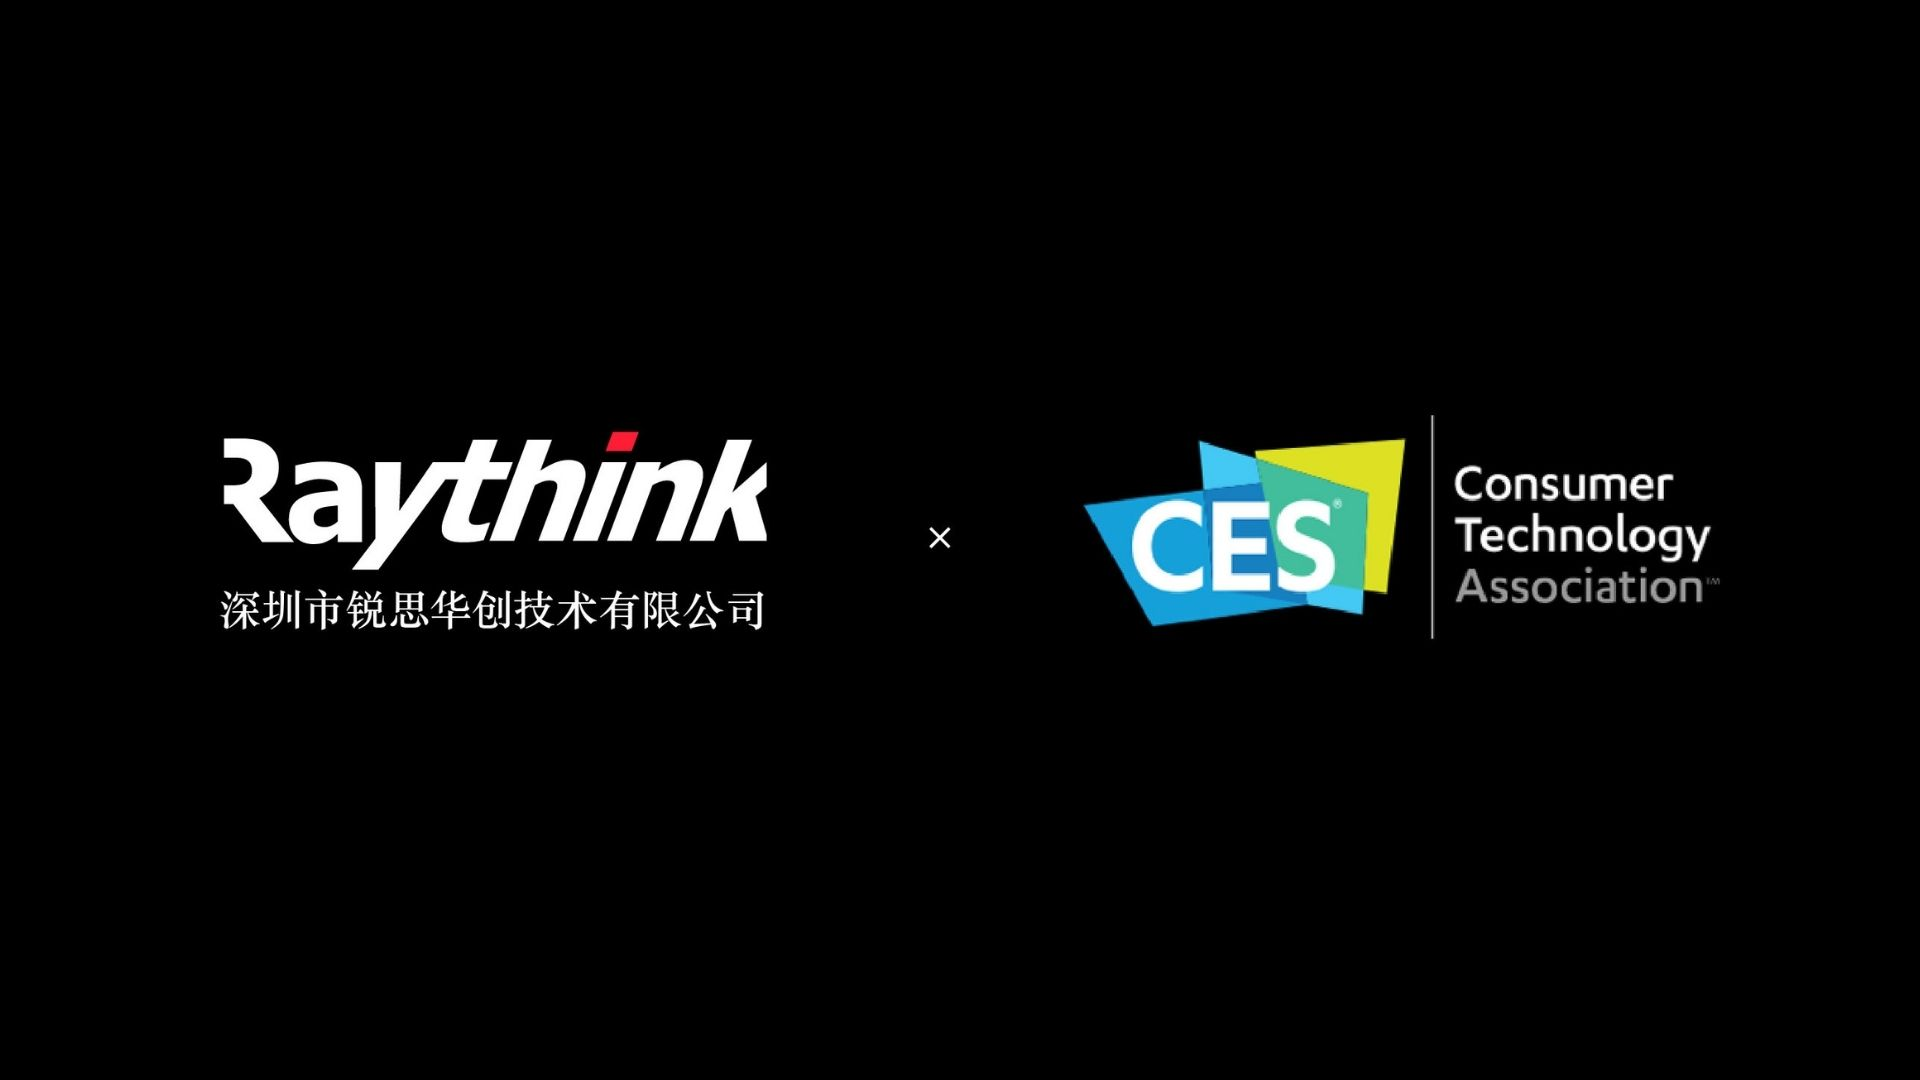 Raythink will be exhibiting on CES digital activation 2021